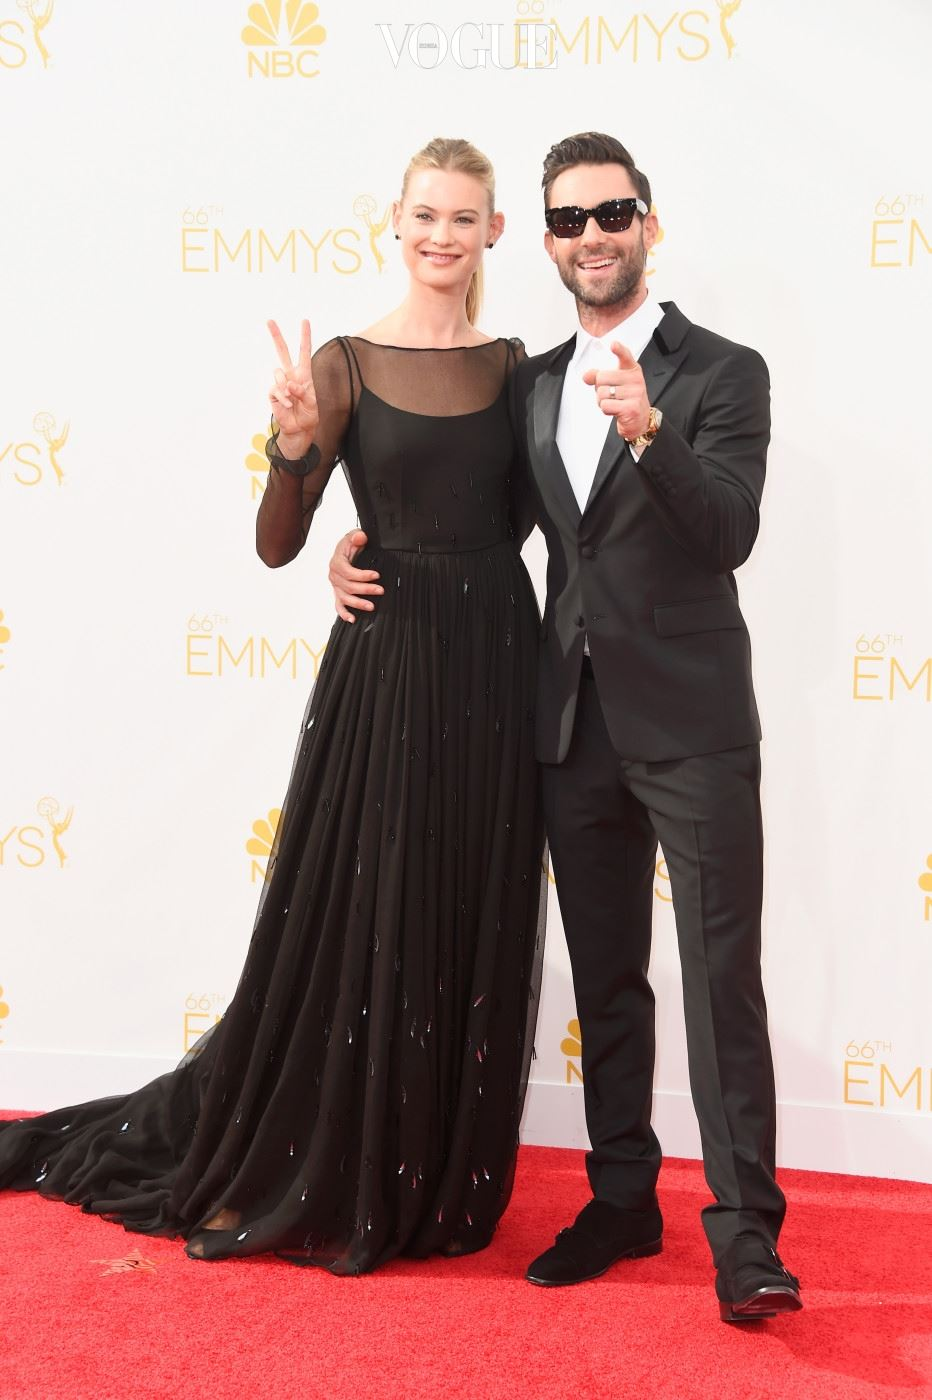 LOS ANGELES, CA - AUGUST 25:  Model Behati Prinsloo (L) and singer Adam Levine attend the 66th Annual Primetime Emmy Awards held at Nokia Theatre L.A. Live on August 25, 2014 in Los Angeles, California.  (Photo by Frazer Harrison/Getty Images)